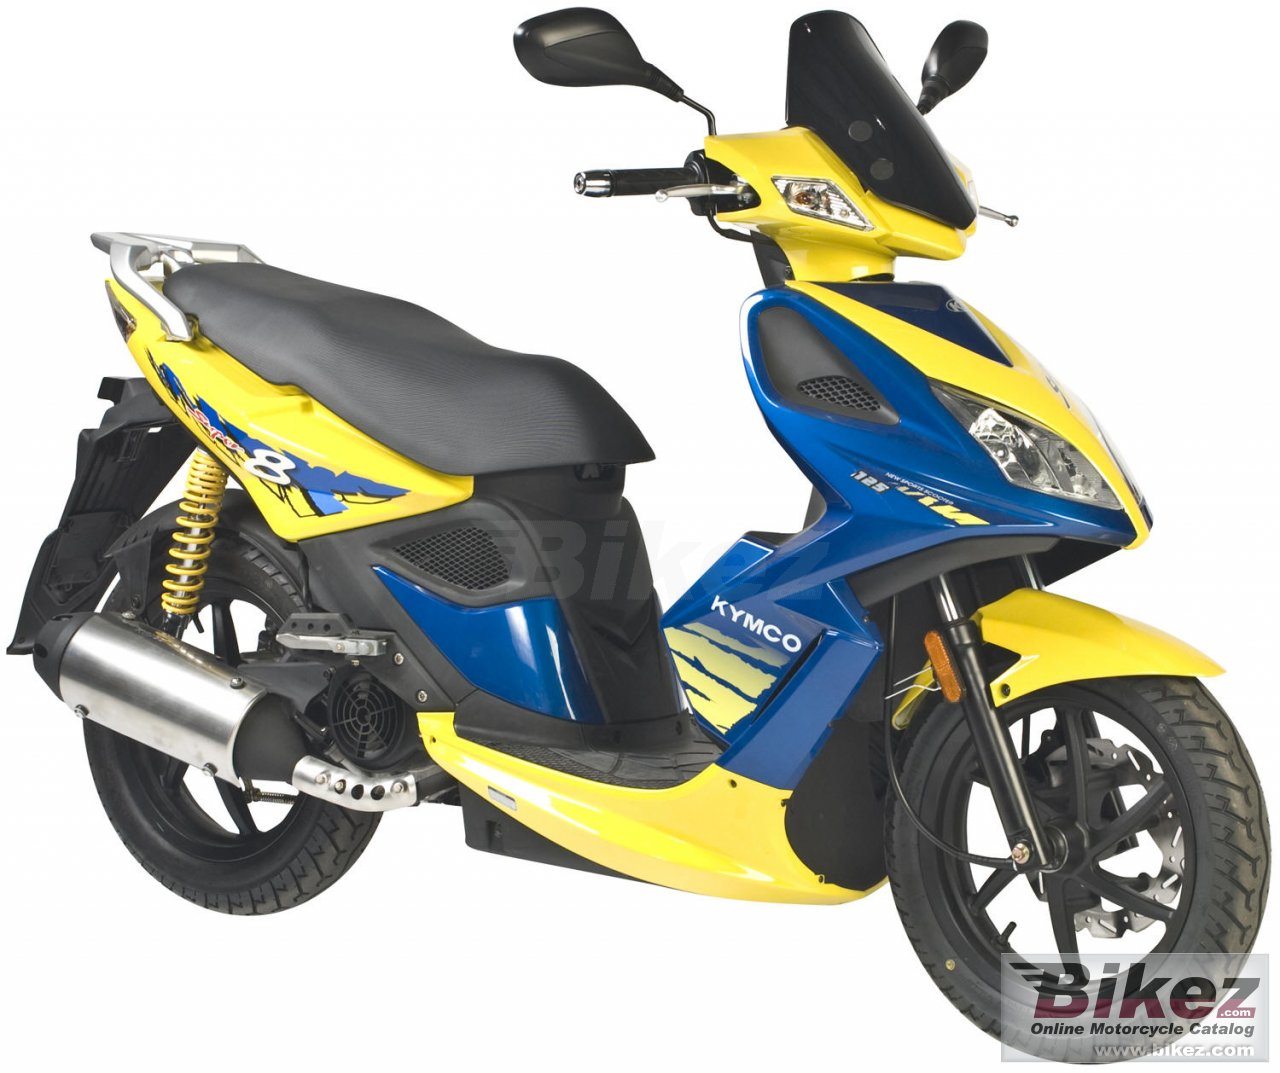 Big Kymco super 8 150 picture and wallpaper from Bikez.com